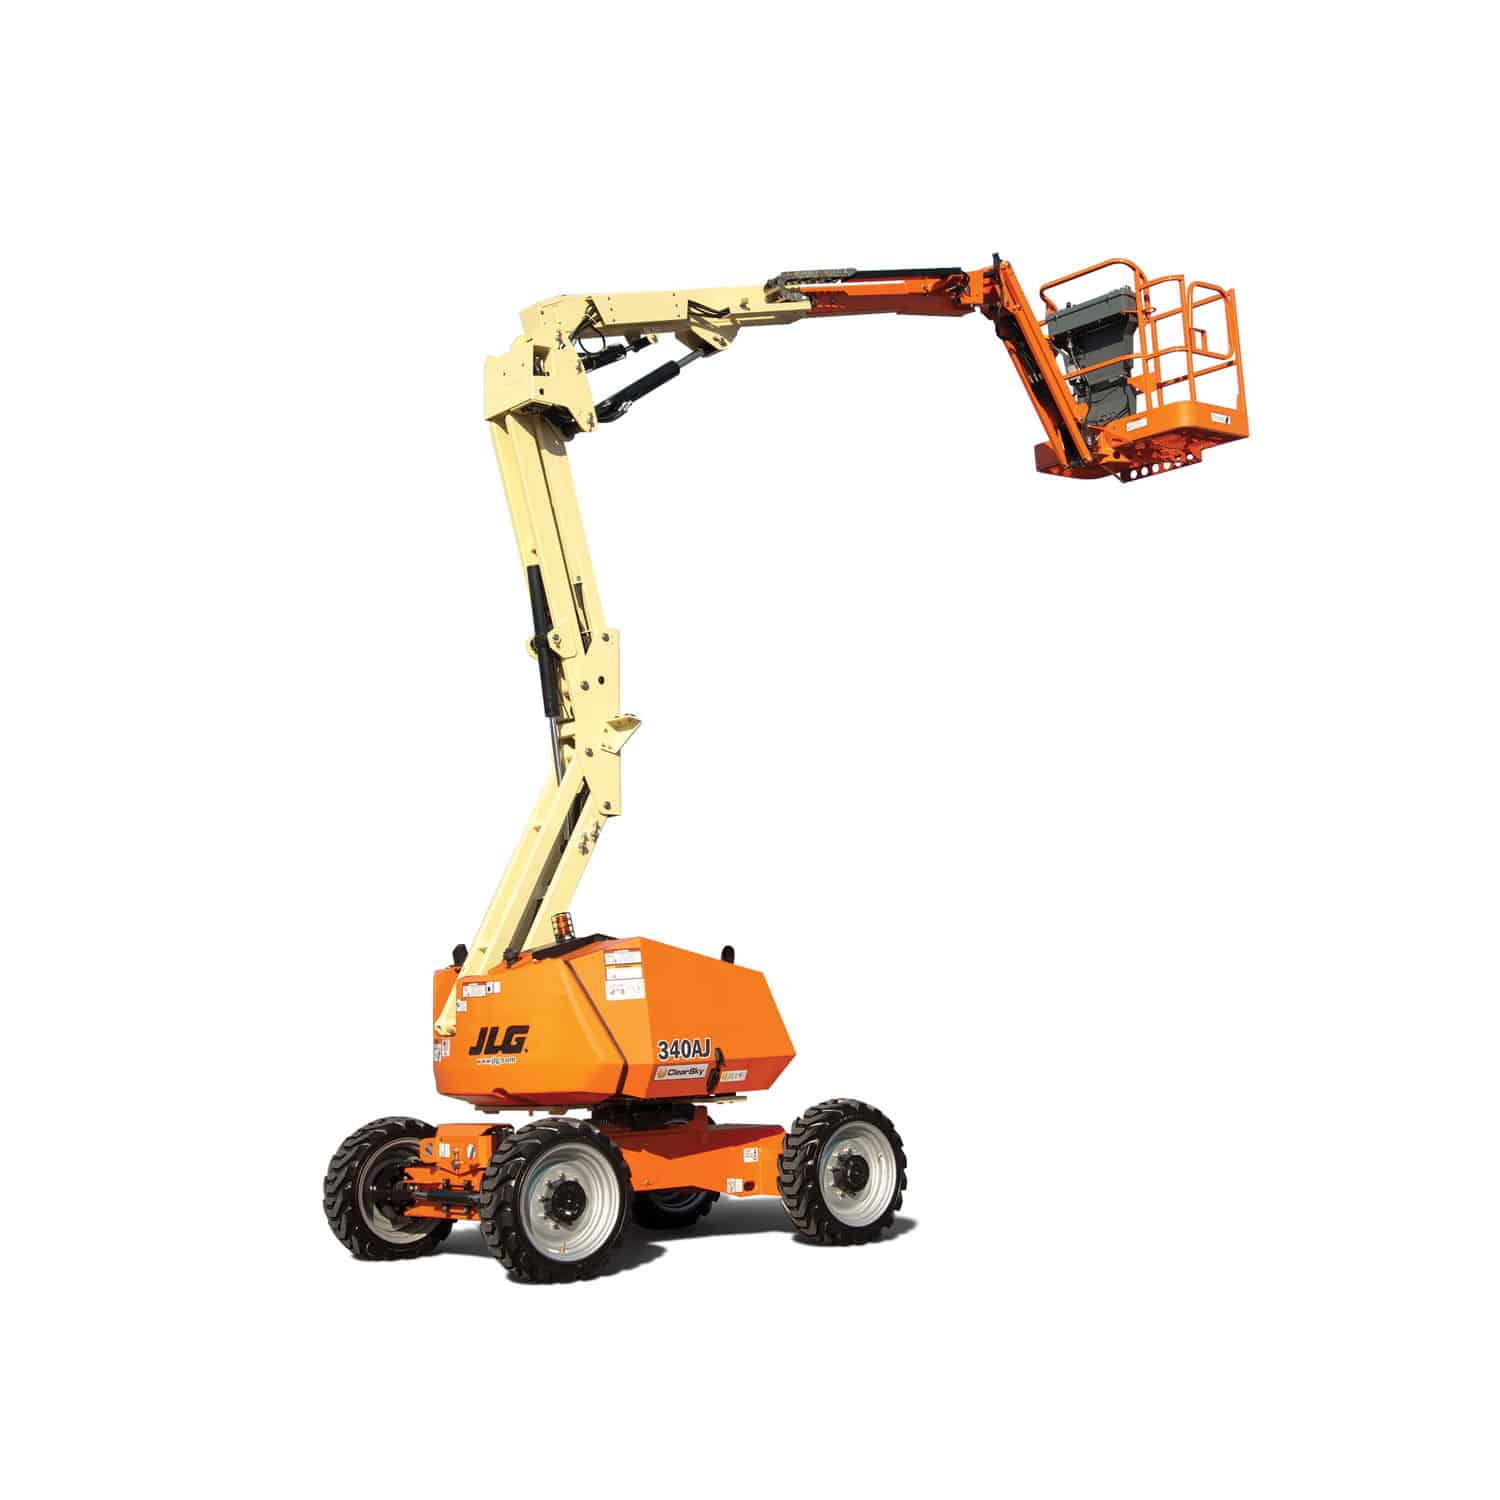 Wheeled Articulated Boom Lift All Terrain For Construction Wiring Diagram Jlg 800aj Outdoor 340aj